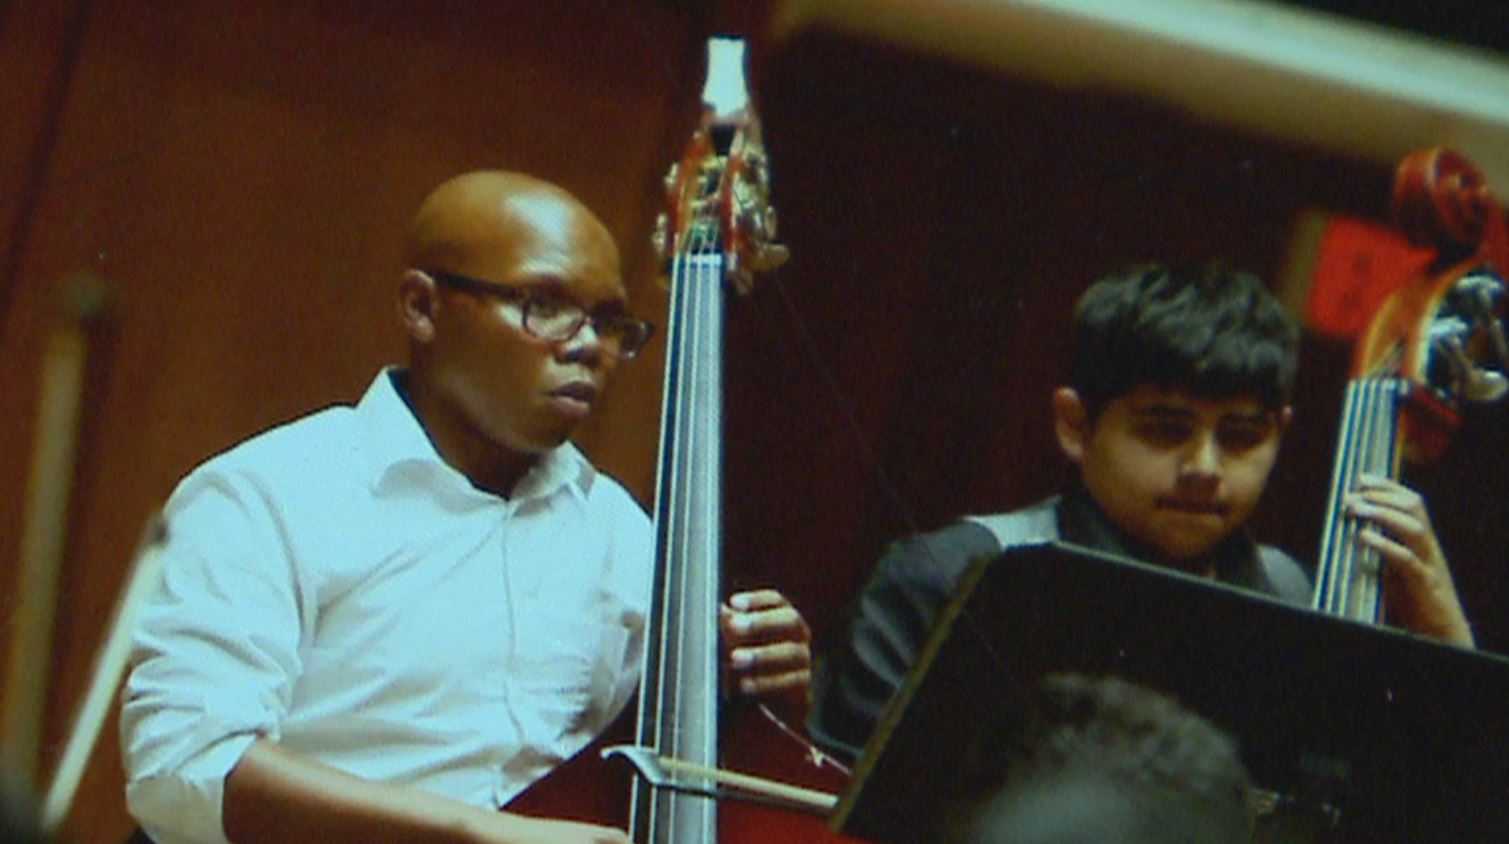 Draylen Mason, First Chair Bassist